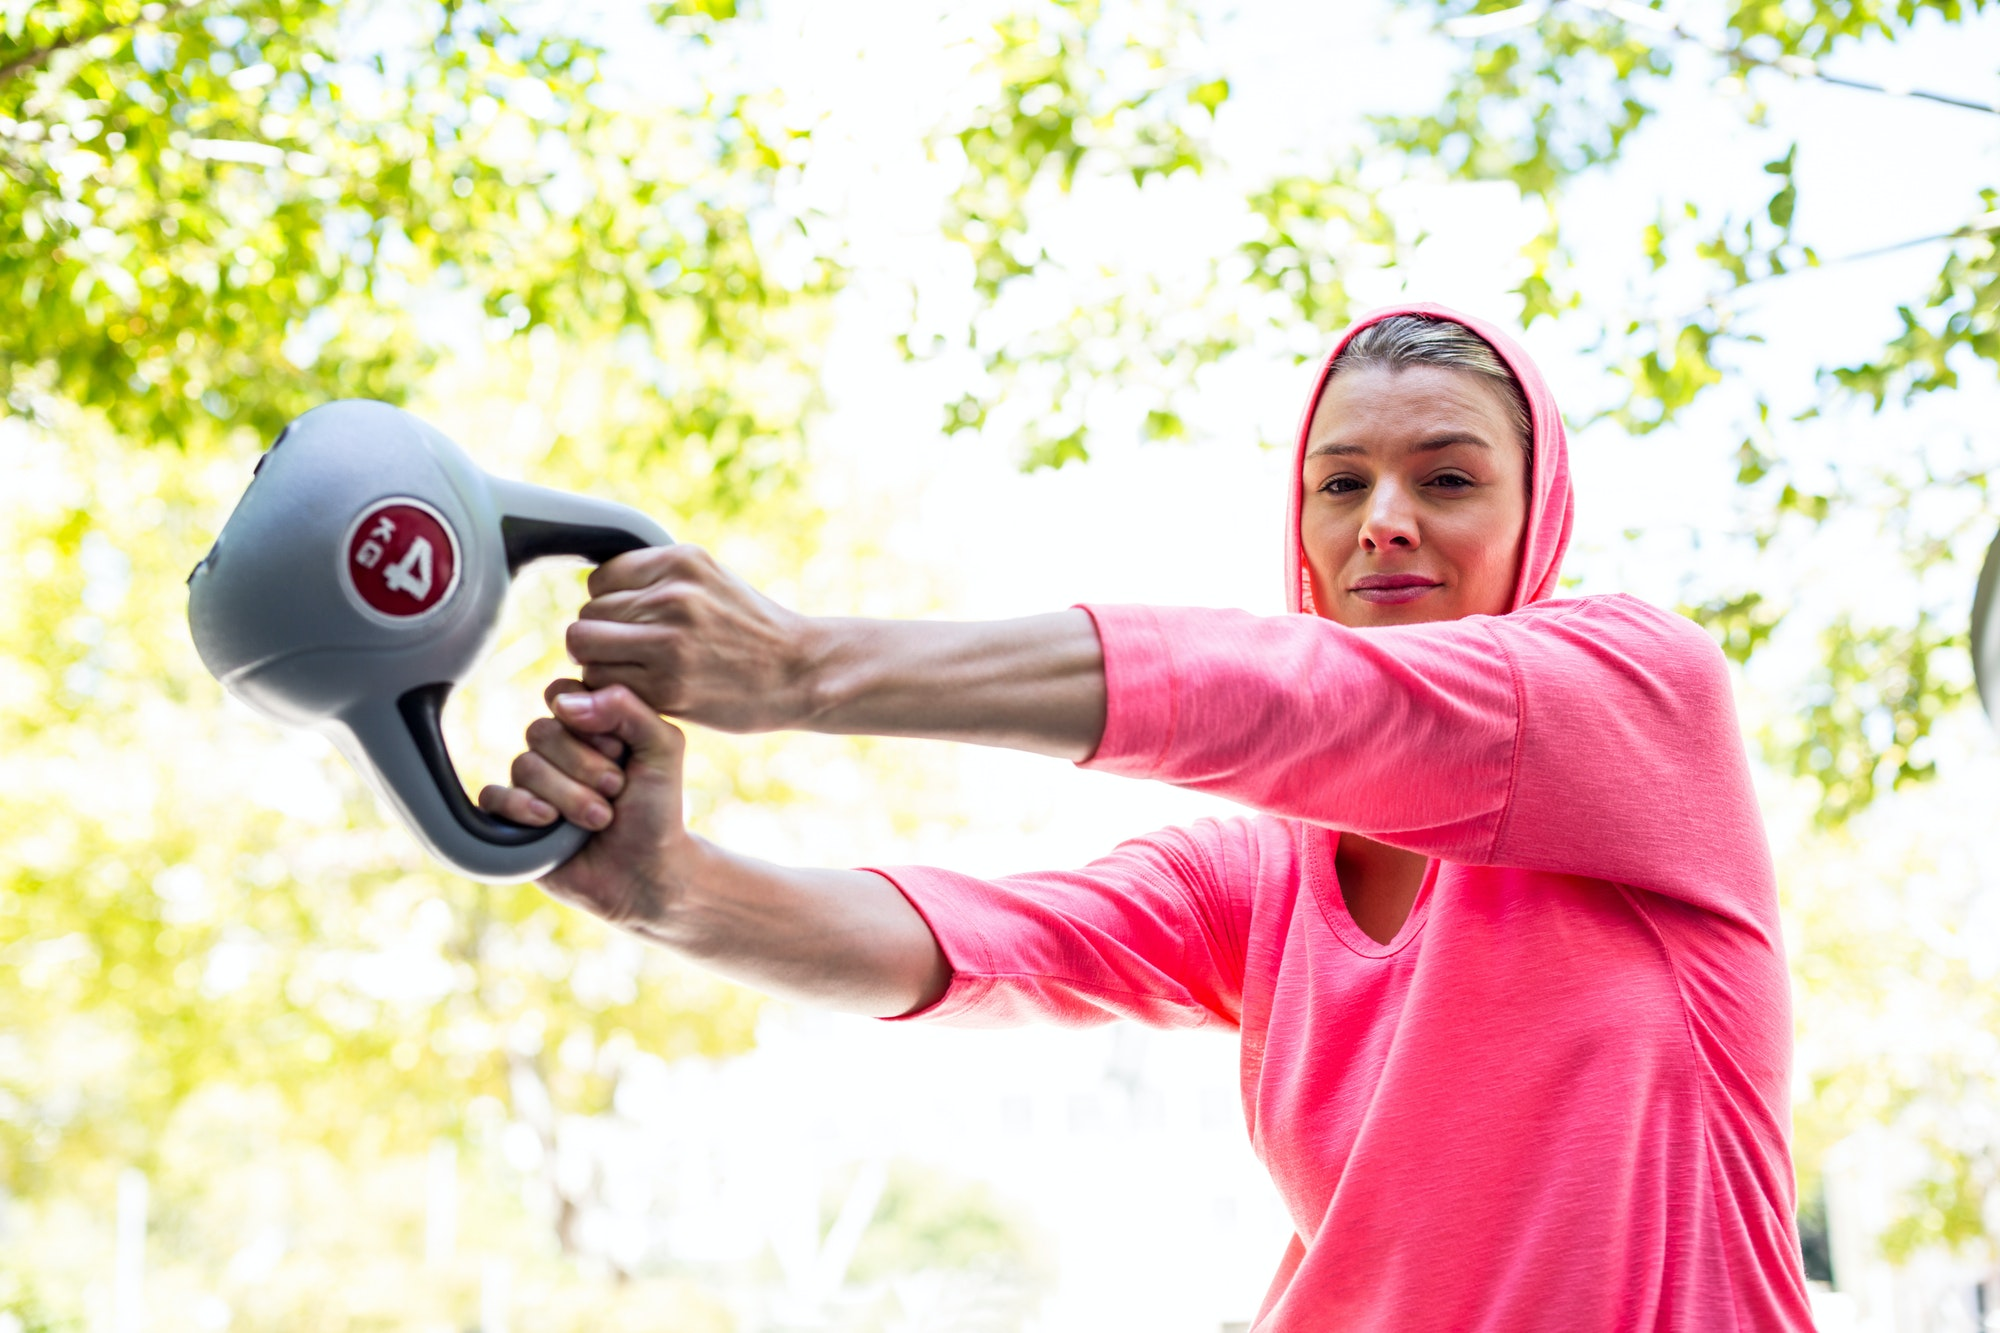 A pretty woman in a pink outfit doing exercise with a weight on a sunny day